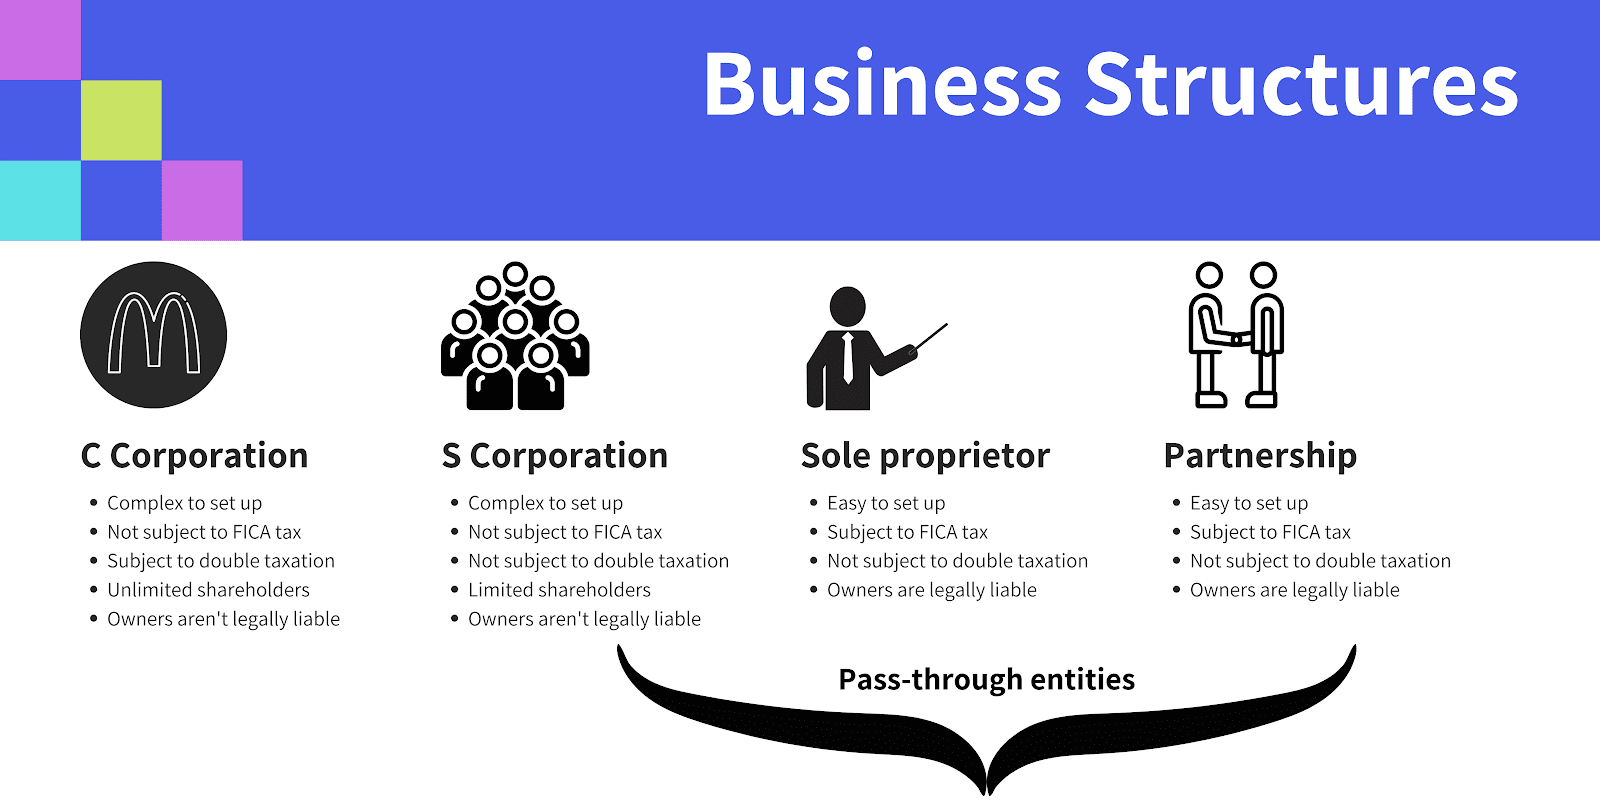 Infographic showing different business structures